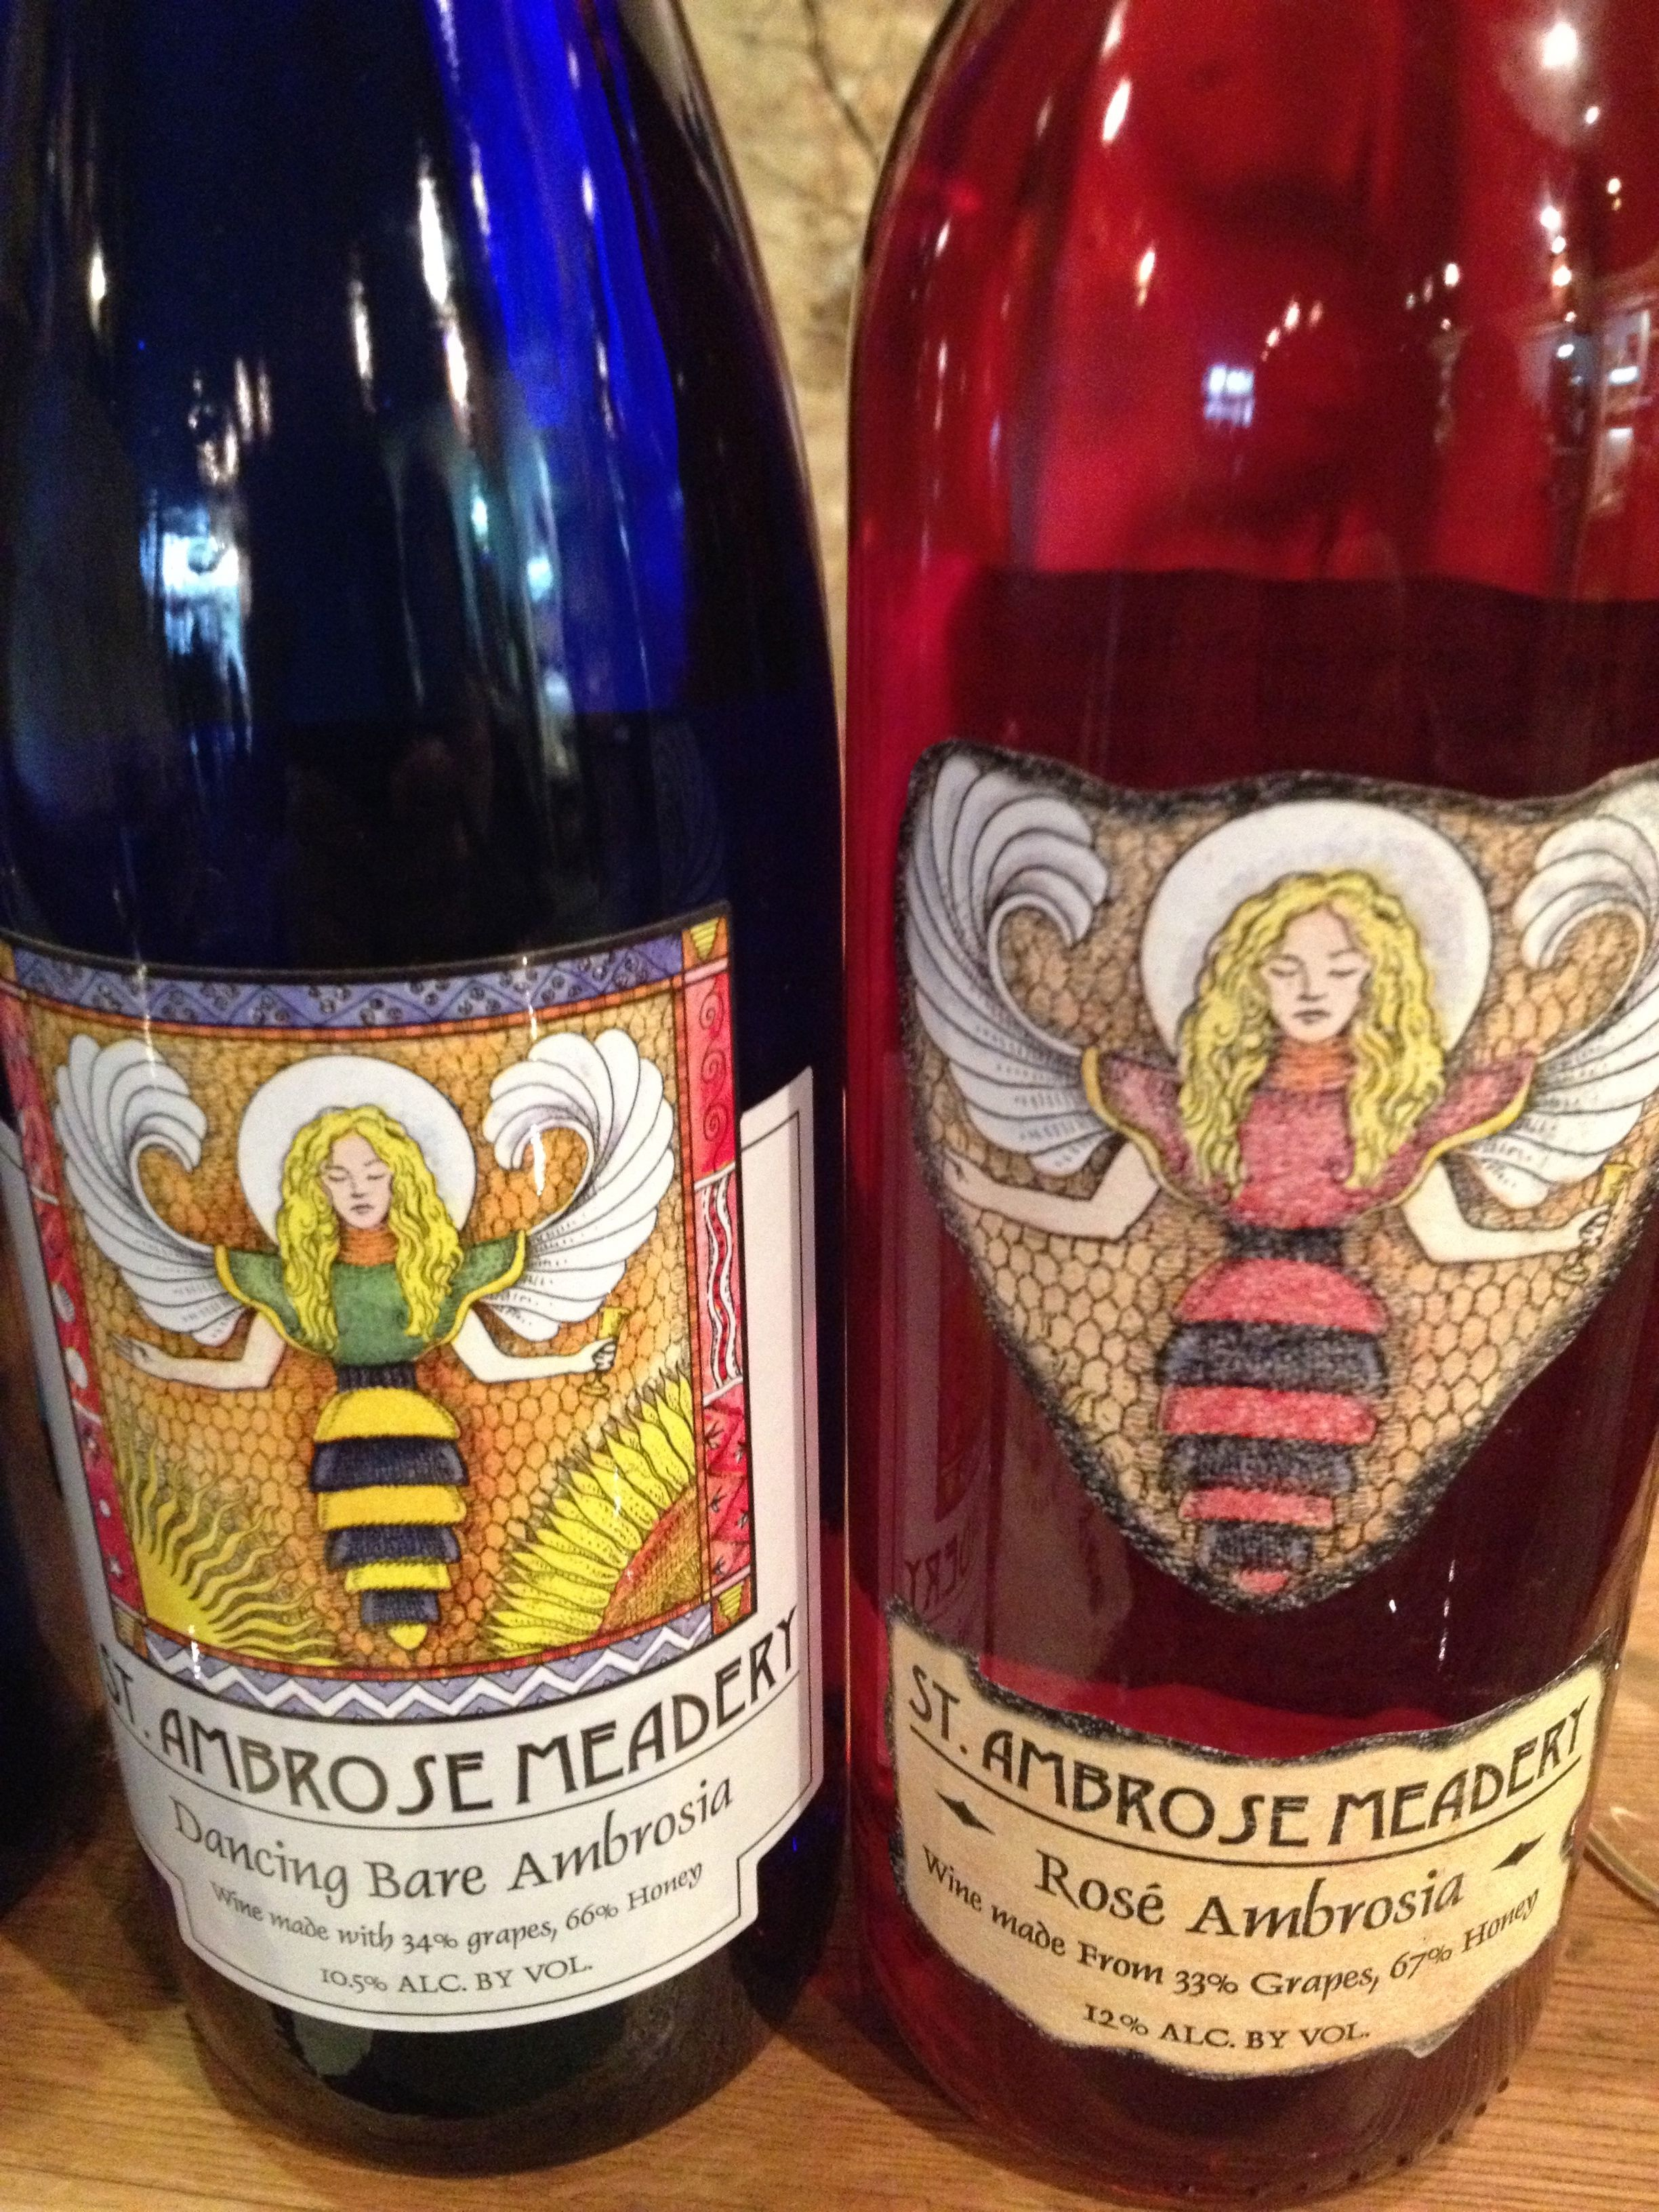 Four Varieties Of Mead Wine From Savannah Bee Company Each With Colorful Unique Label Wine Label Art Savannah Bee Savannah Bee Company